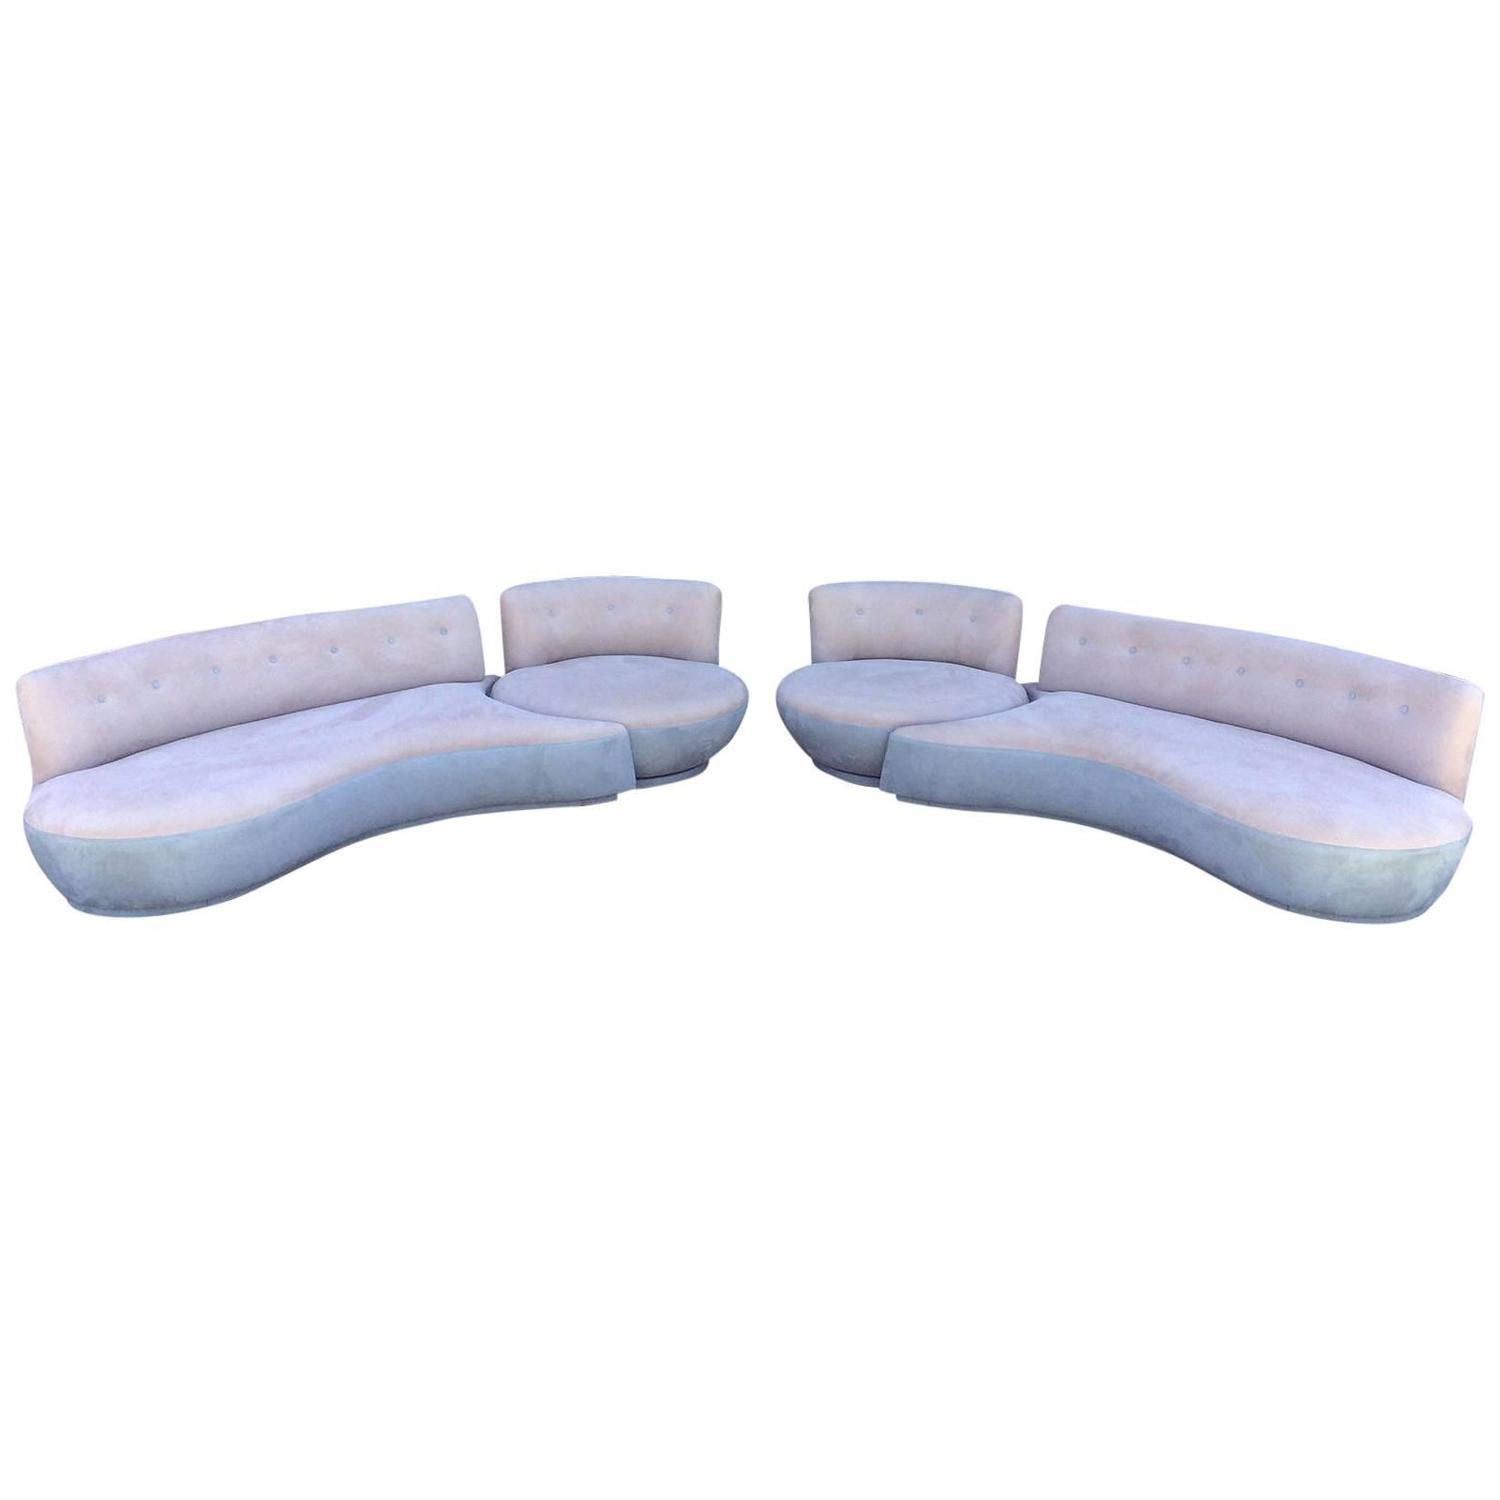 Vintage 4 piece sectional sofa with swivel chairs chairish for Sectional sofa swivel chair